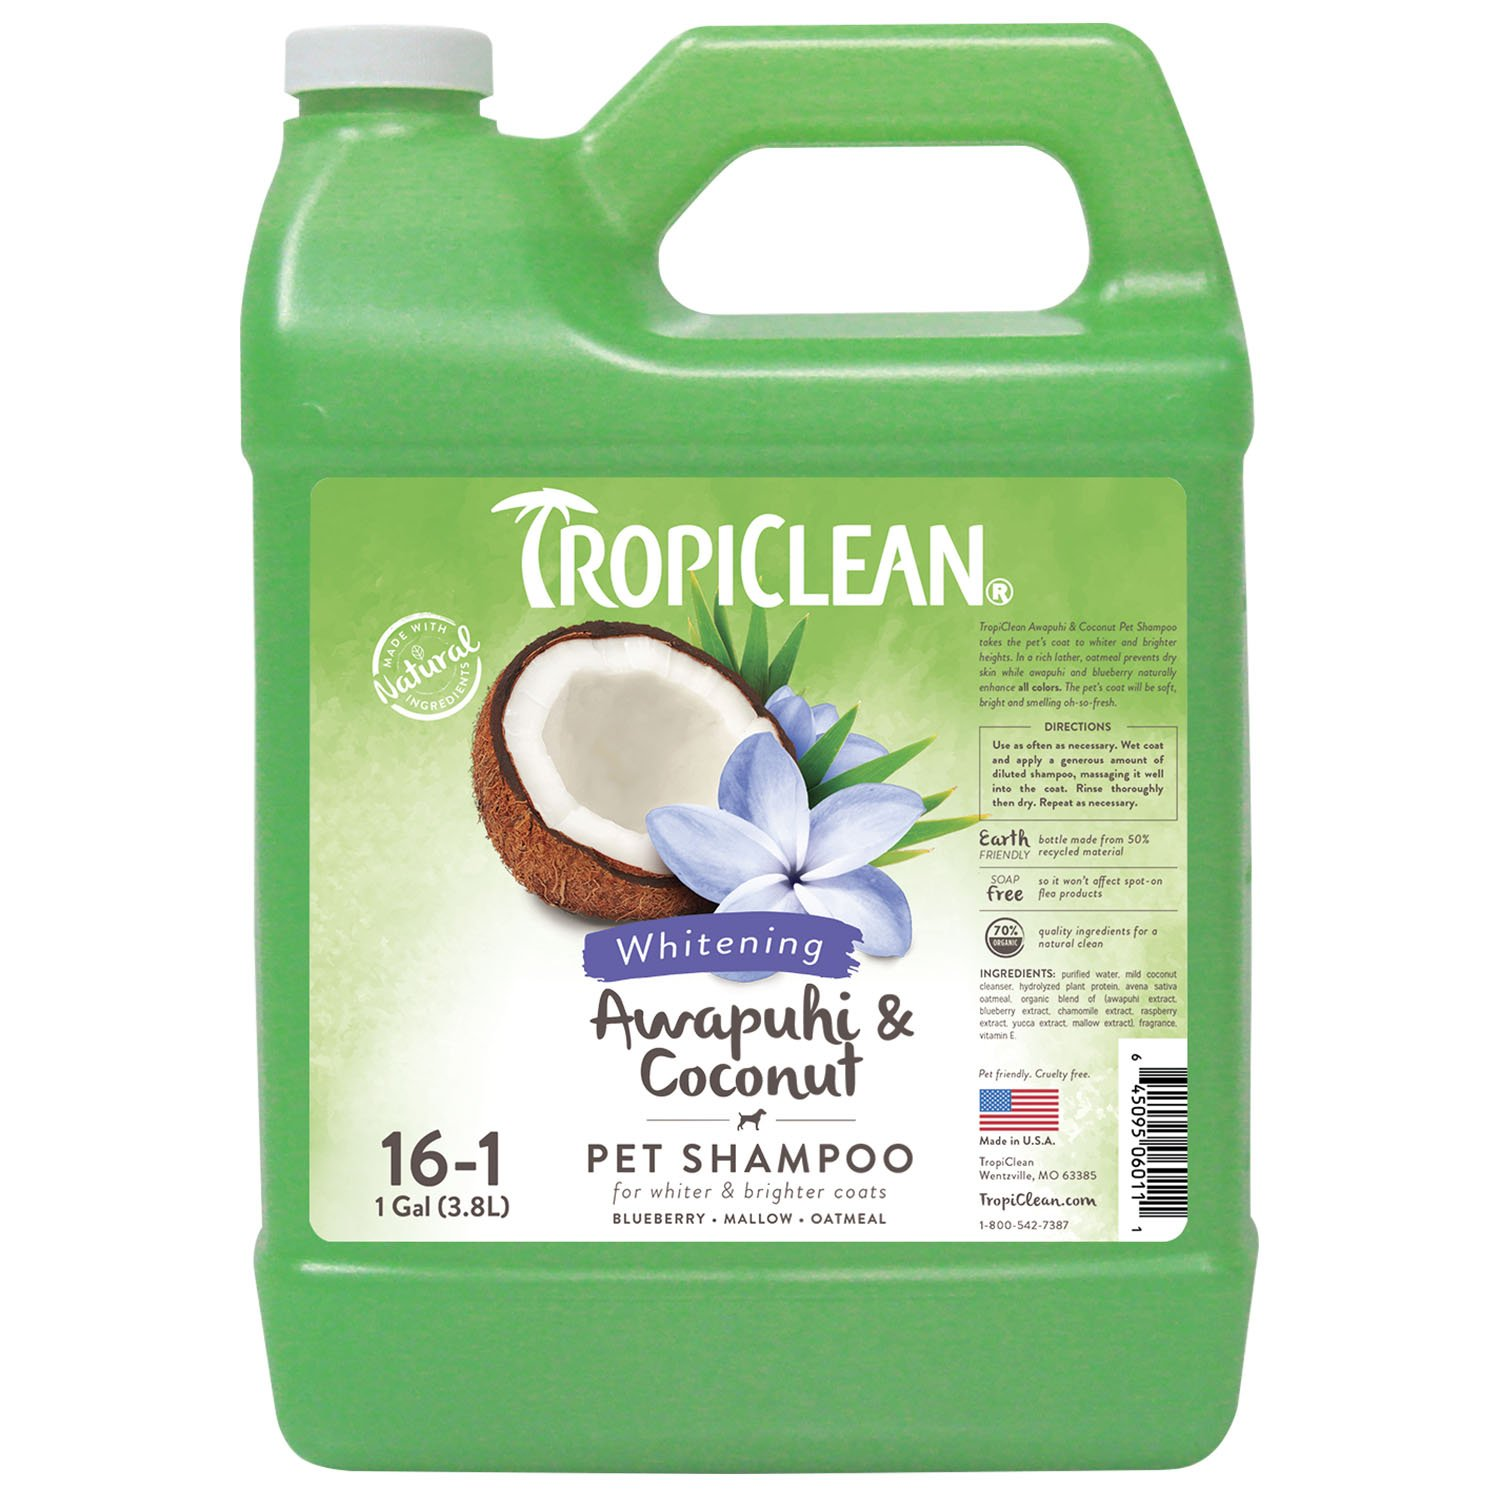 TropiClean Awapuhi & Coconut Whitening Pet Shampoo, 1 Gallon